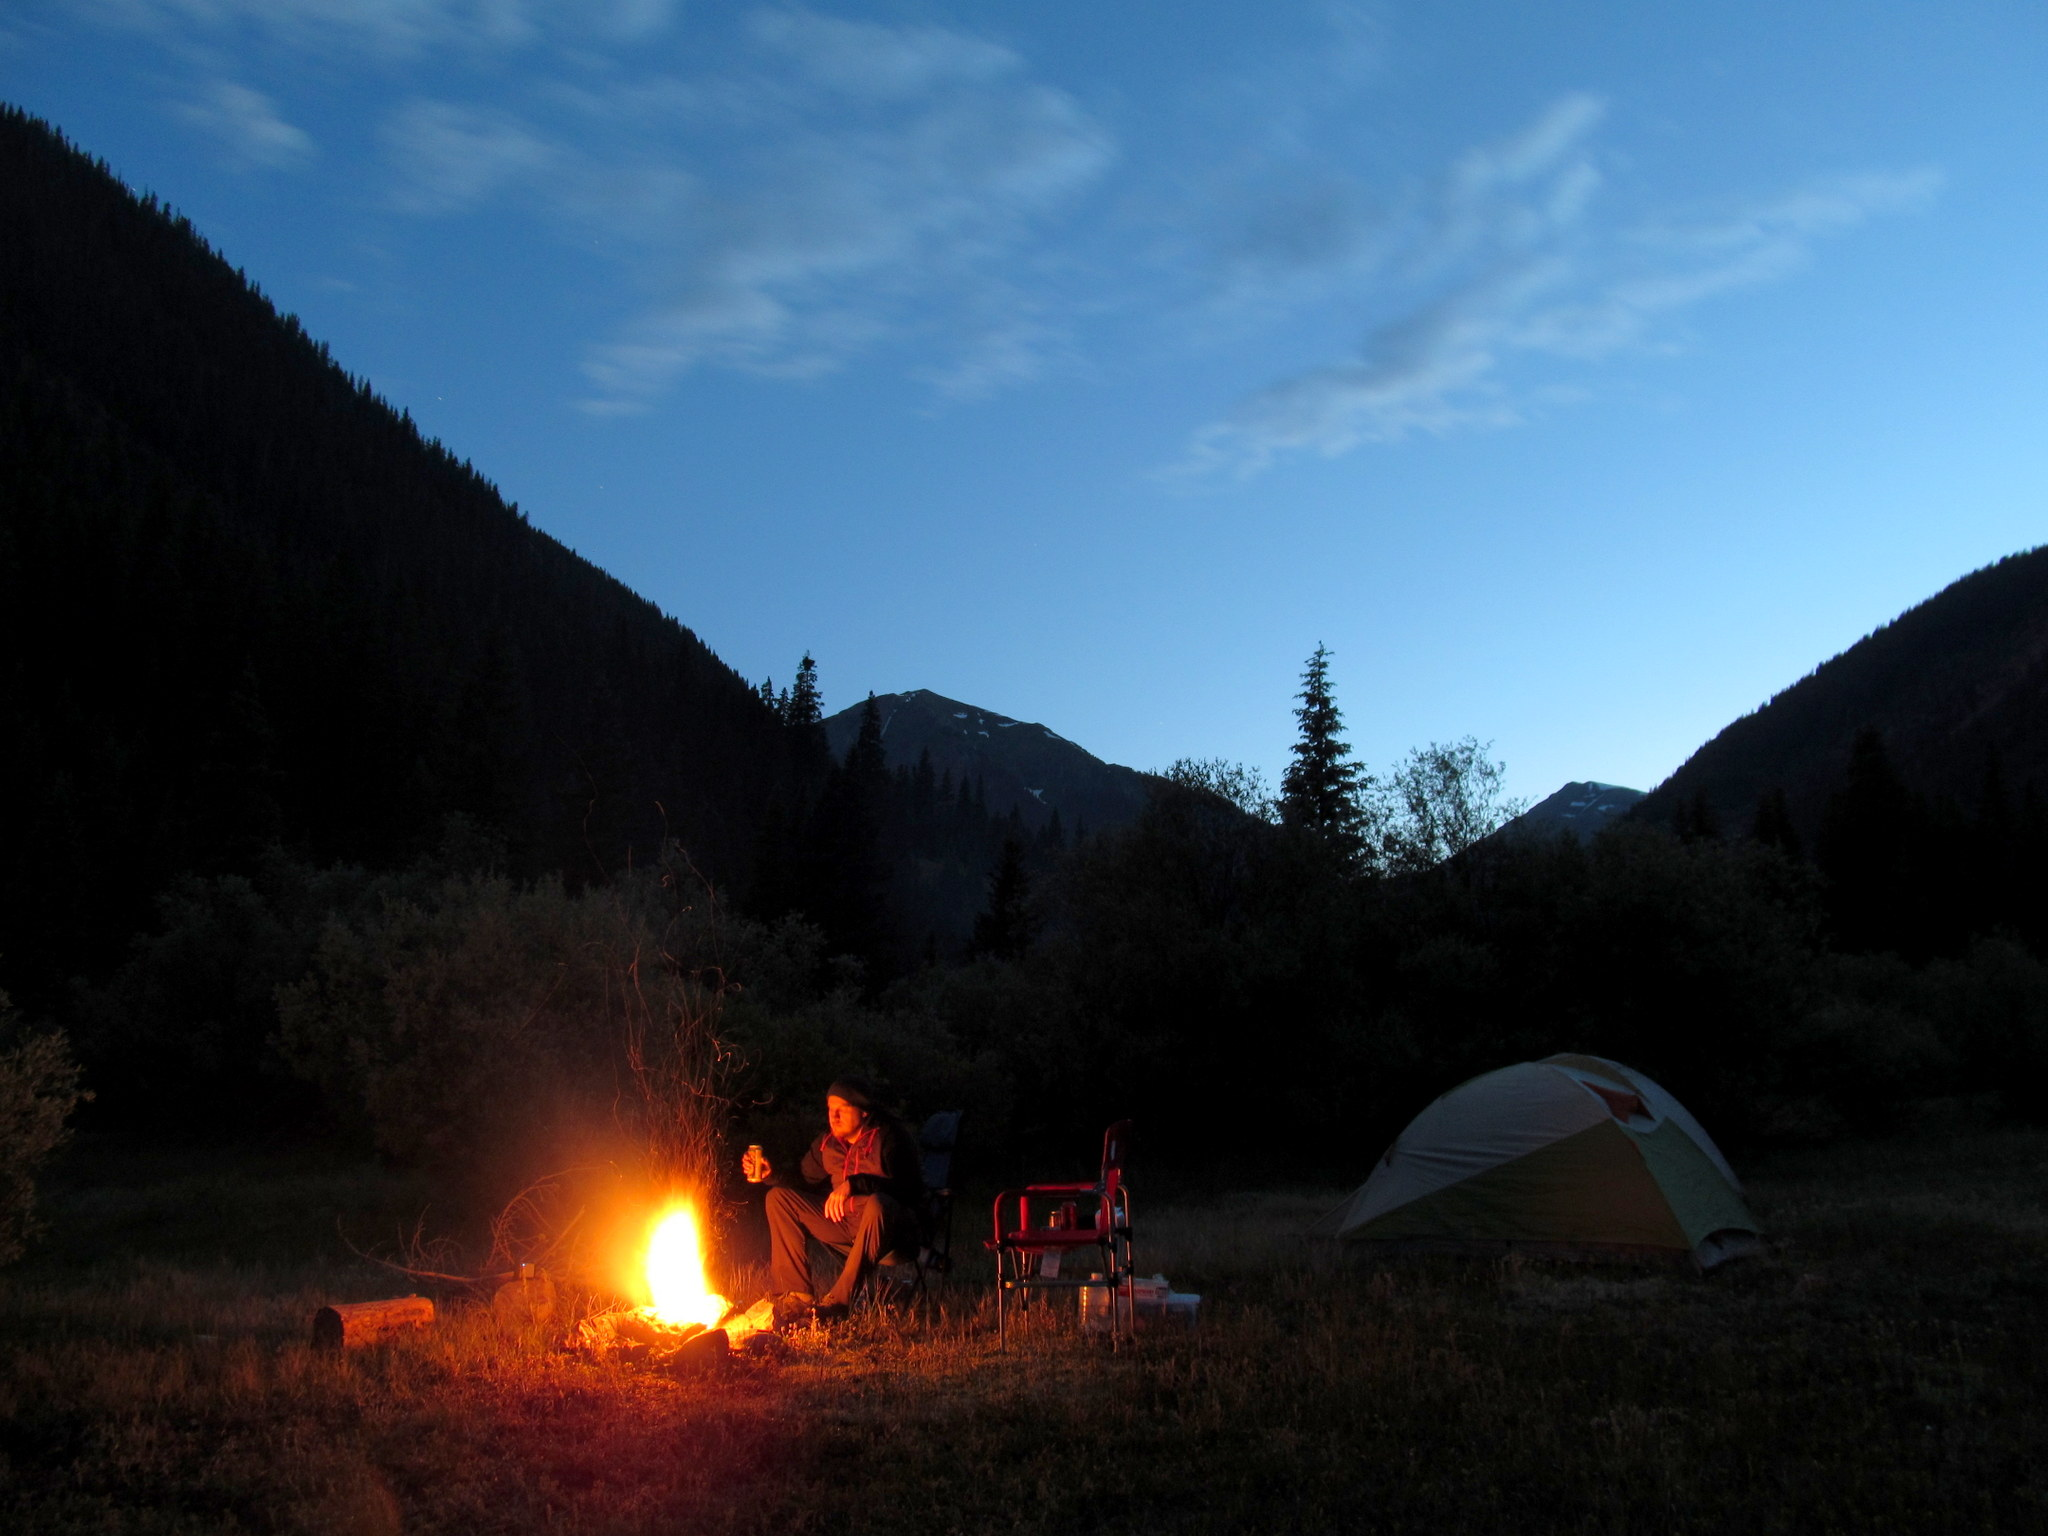 Photo: Camp at dusk